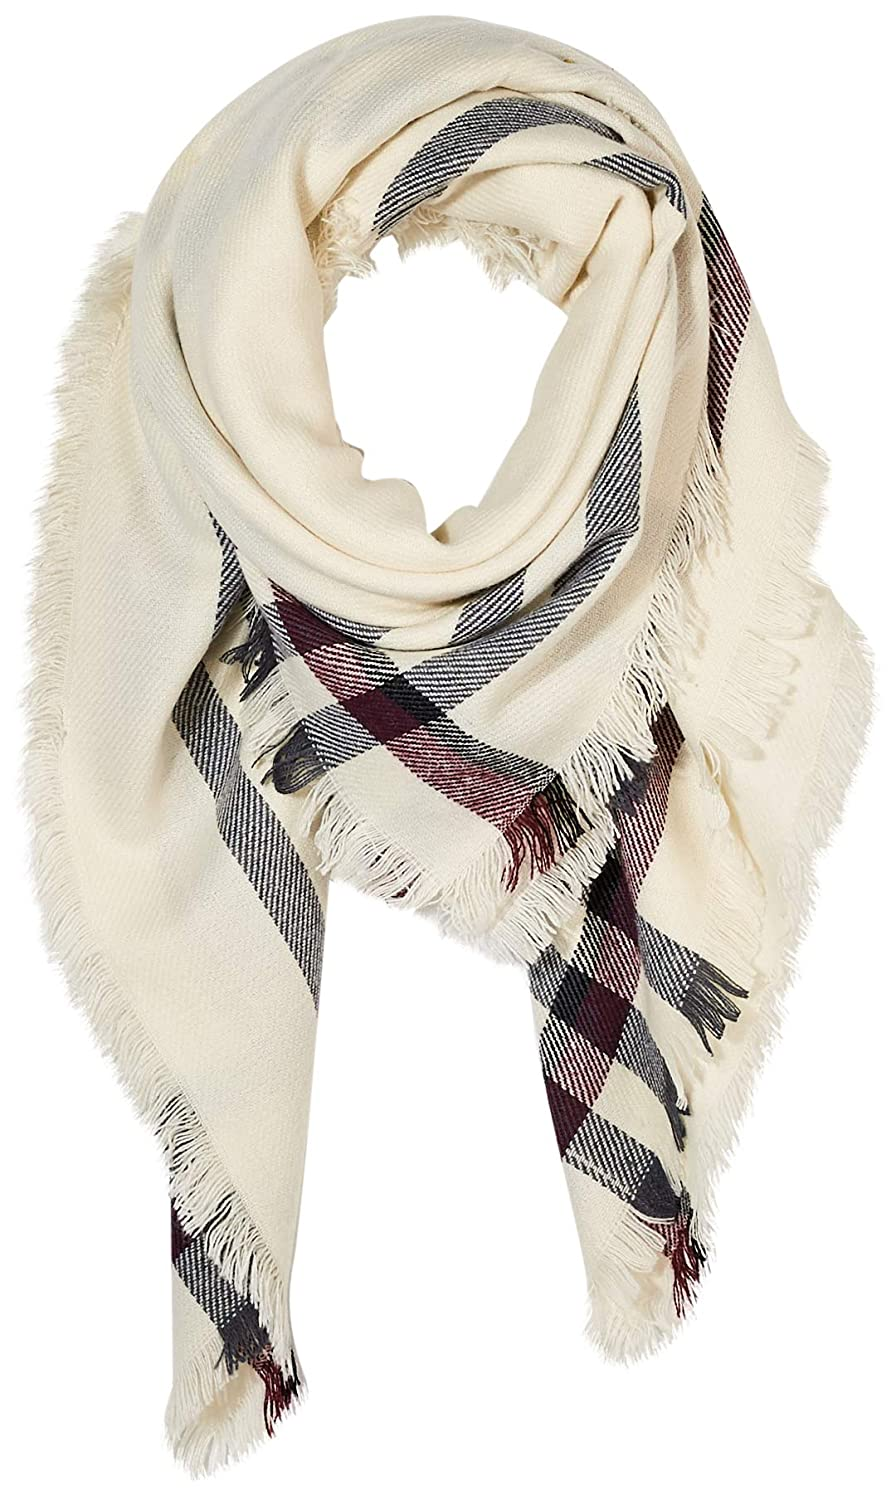 Under Zero Women Winter Acrylic Beige Plaid Fringe Wrap Warm Large Square Scarf 0618A1969